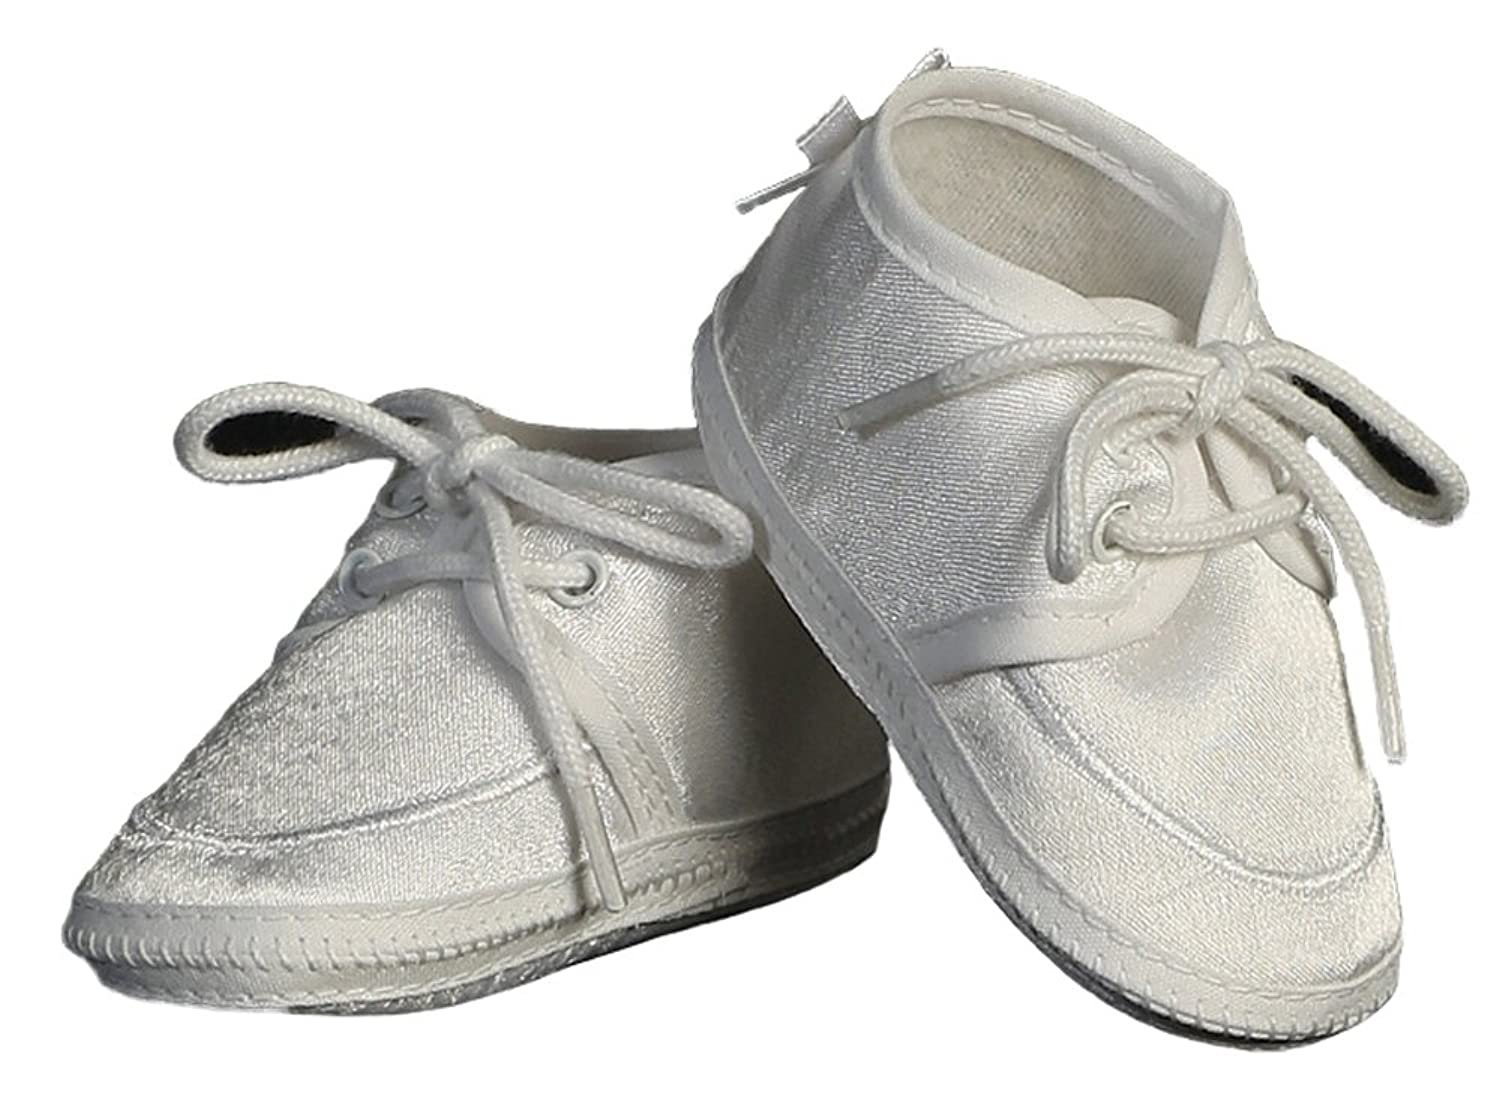 amazon com lito baby boys satin bootie amzn christening outfits